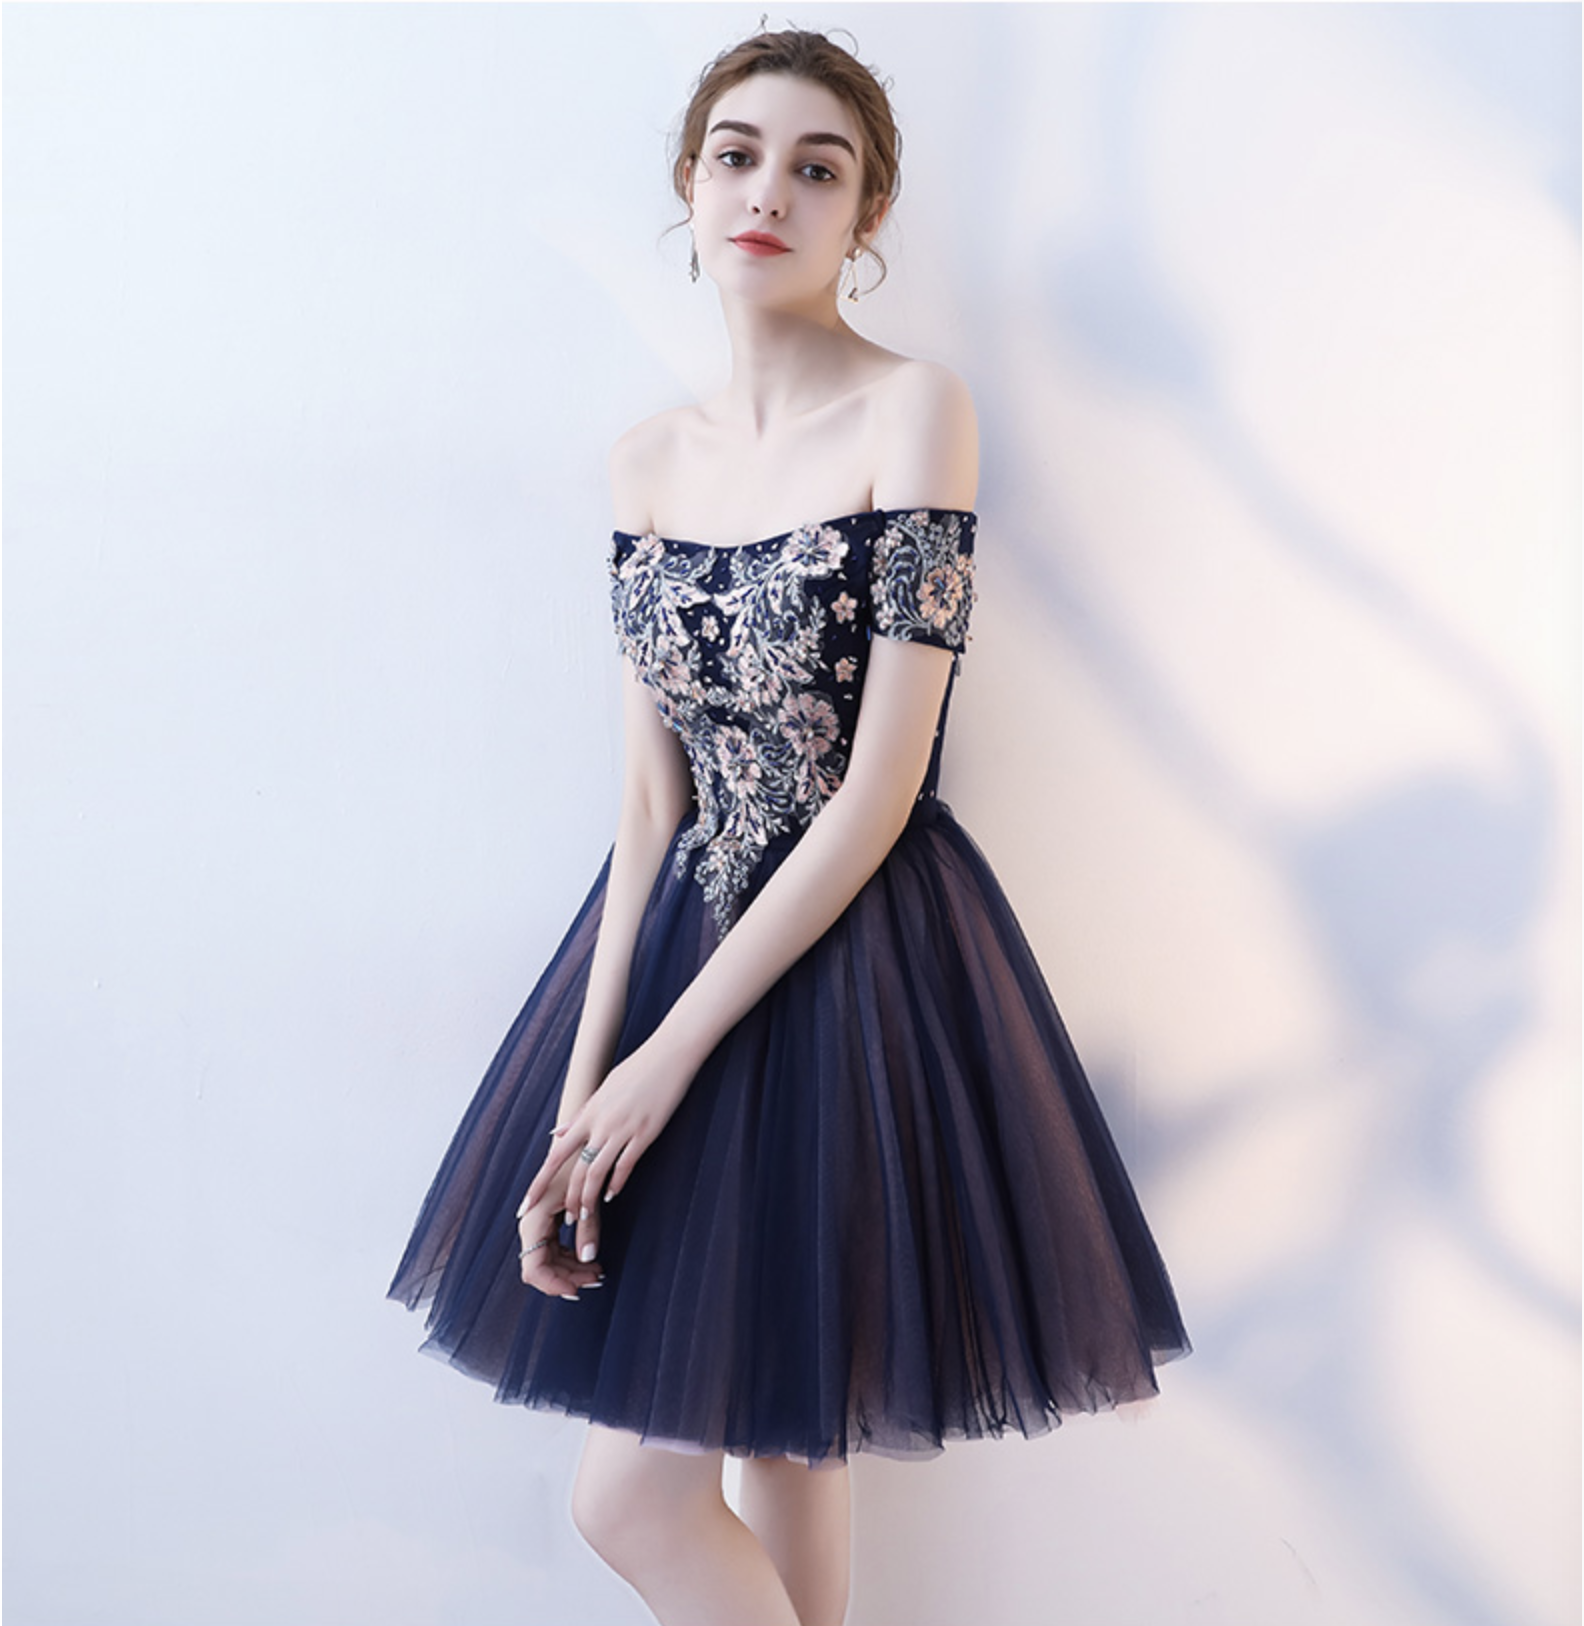 d225d4d8046 Cute tulle lace off shoulder short prom dress, homecoming dress on ...